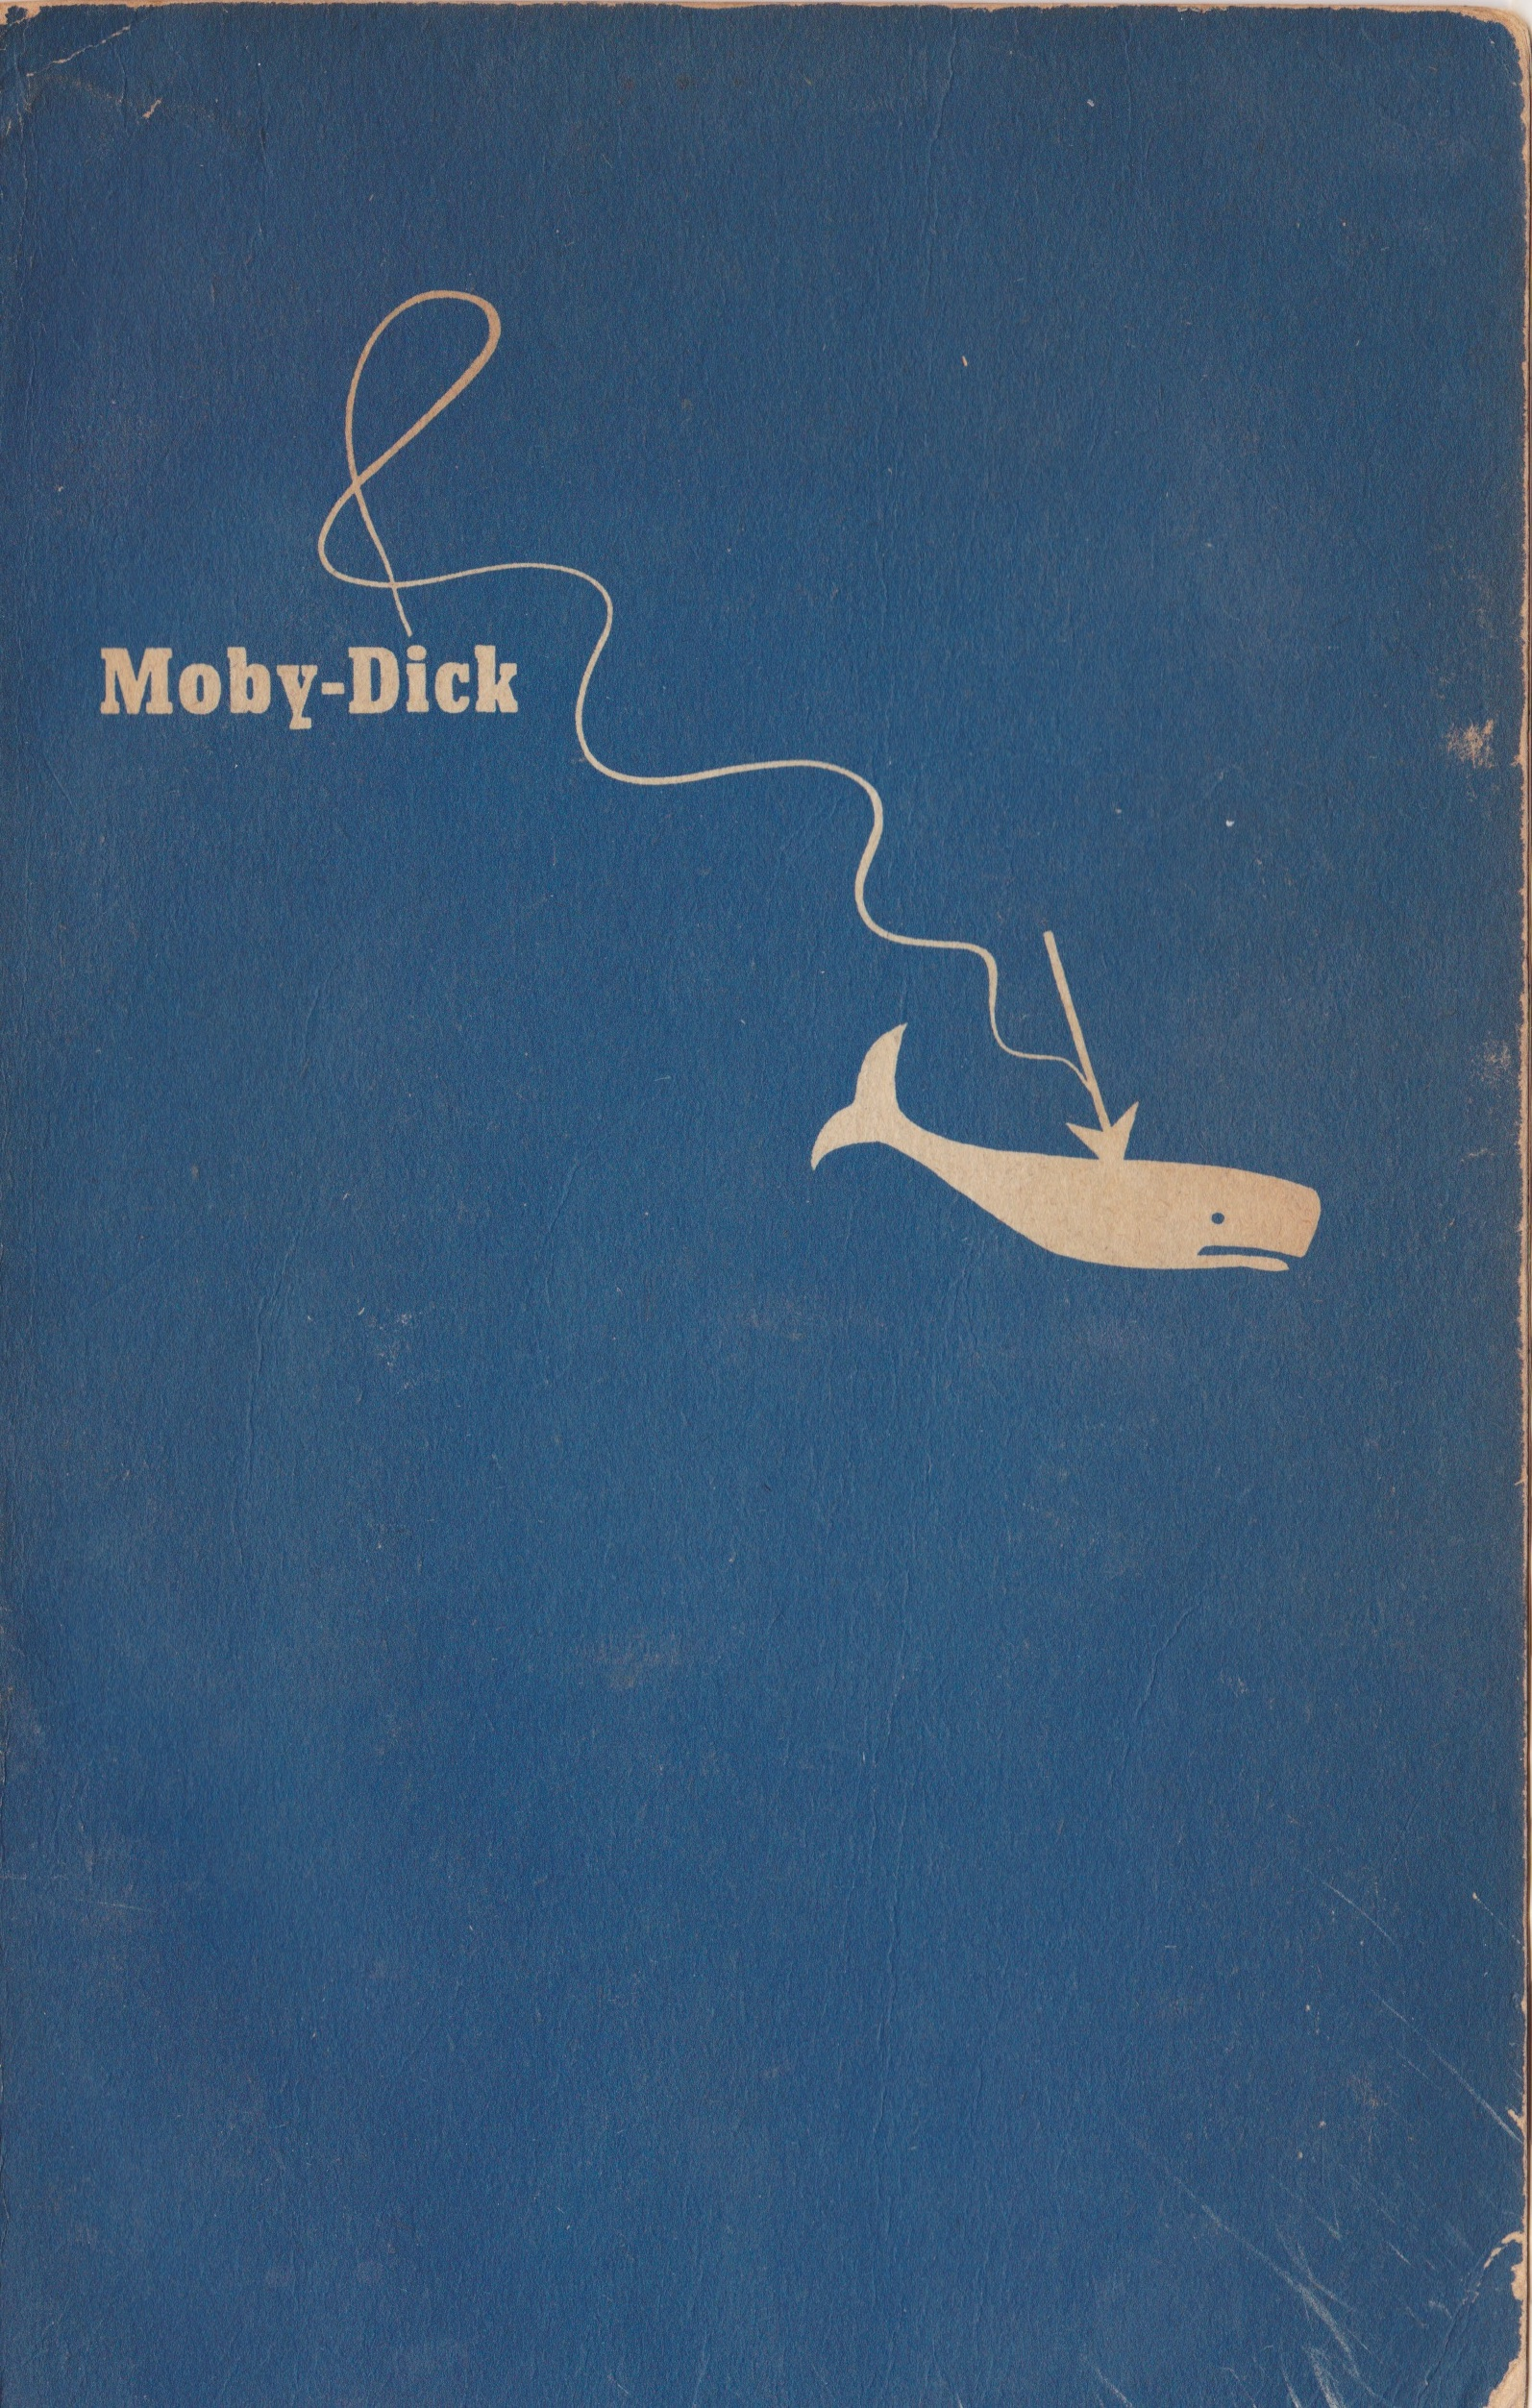 Remarkable, rather moby dick etext